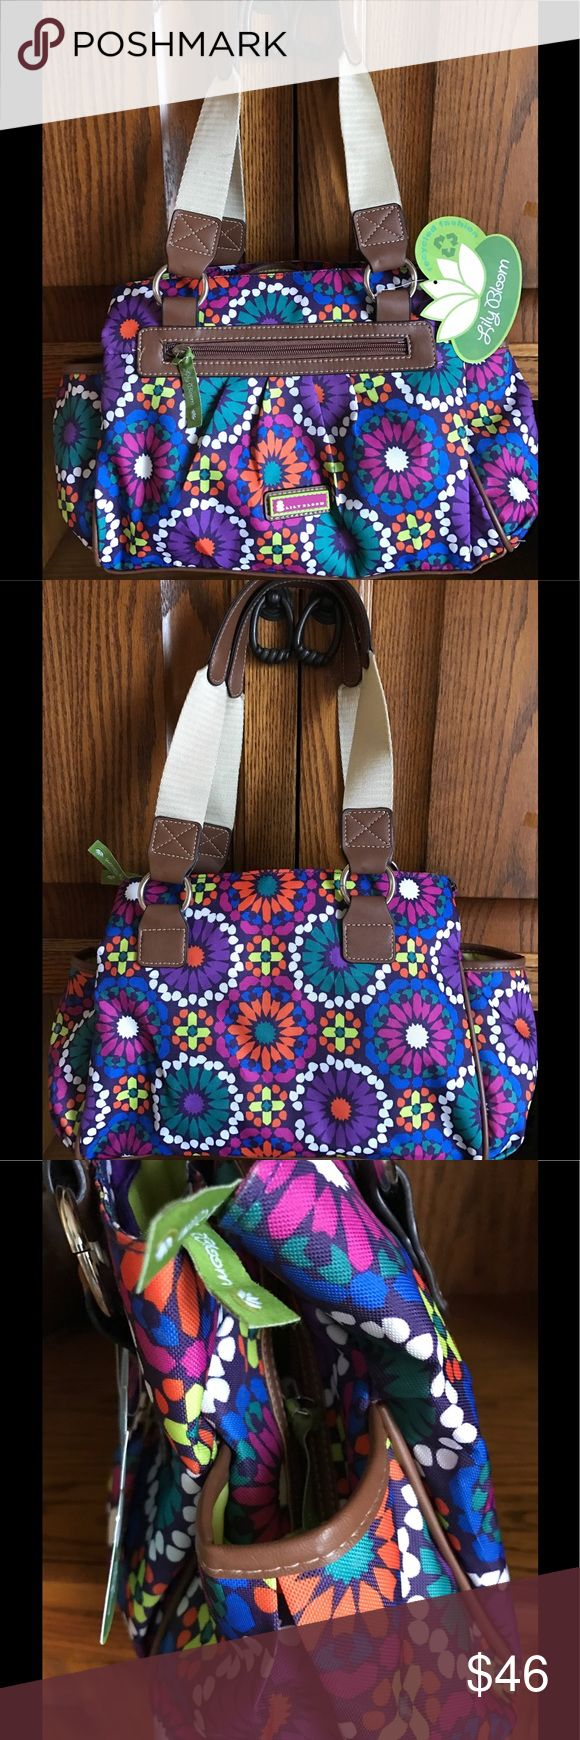 """Lilly Bloom Satchel Purse Desert Sahara Color Lilly Bloom's Purse made from """"Karma Bloom"""" fabric, which is made from recycled plastic bottles. Desert Sahara design. Triple section bag. Style 21RPF84LB-DS Lilly Bloom Bags Satchels"""